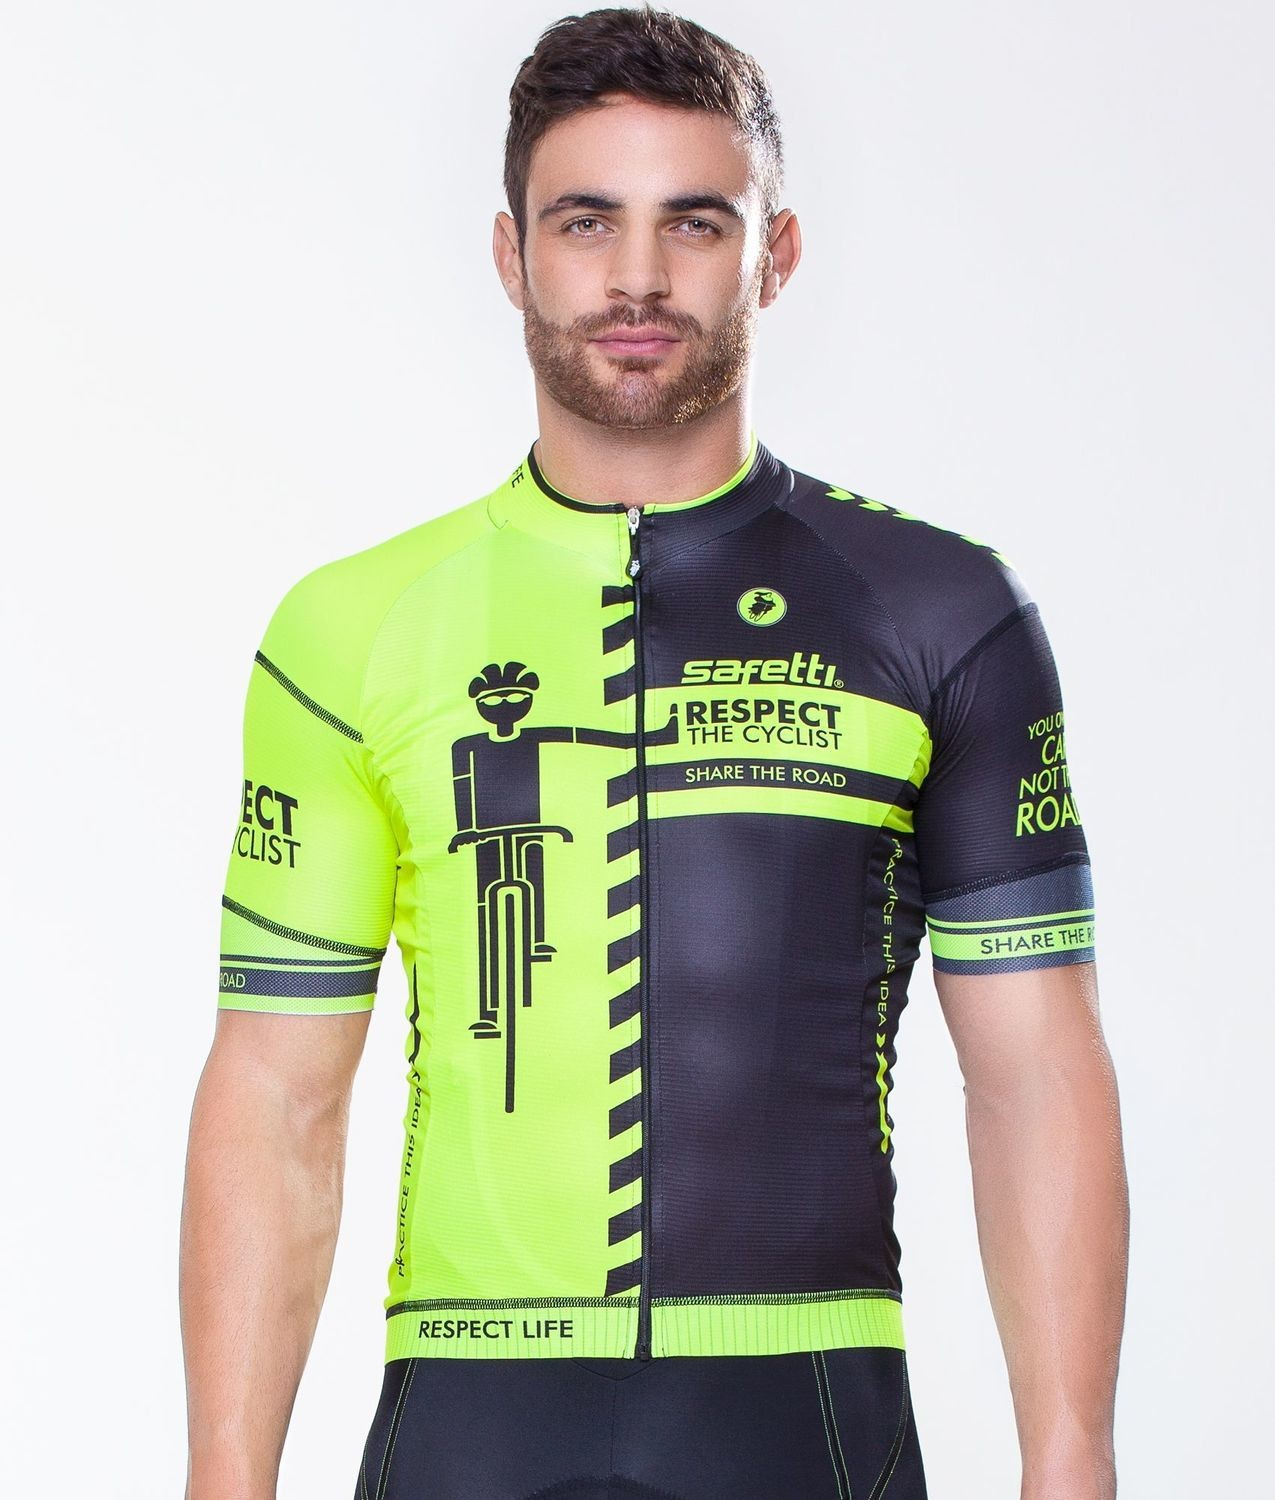 Short Sleeve Jersey - Respect